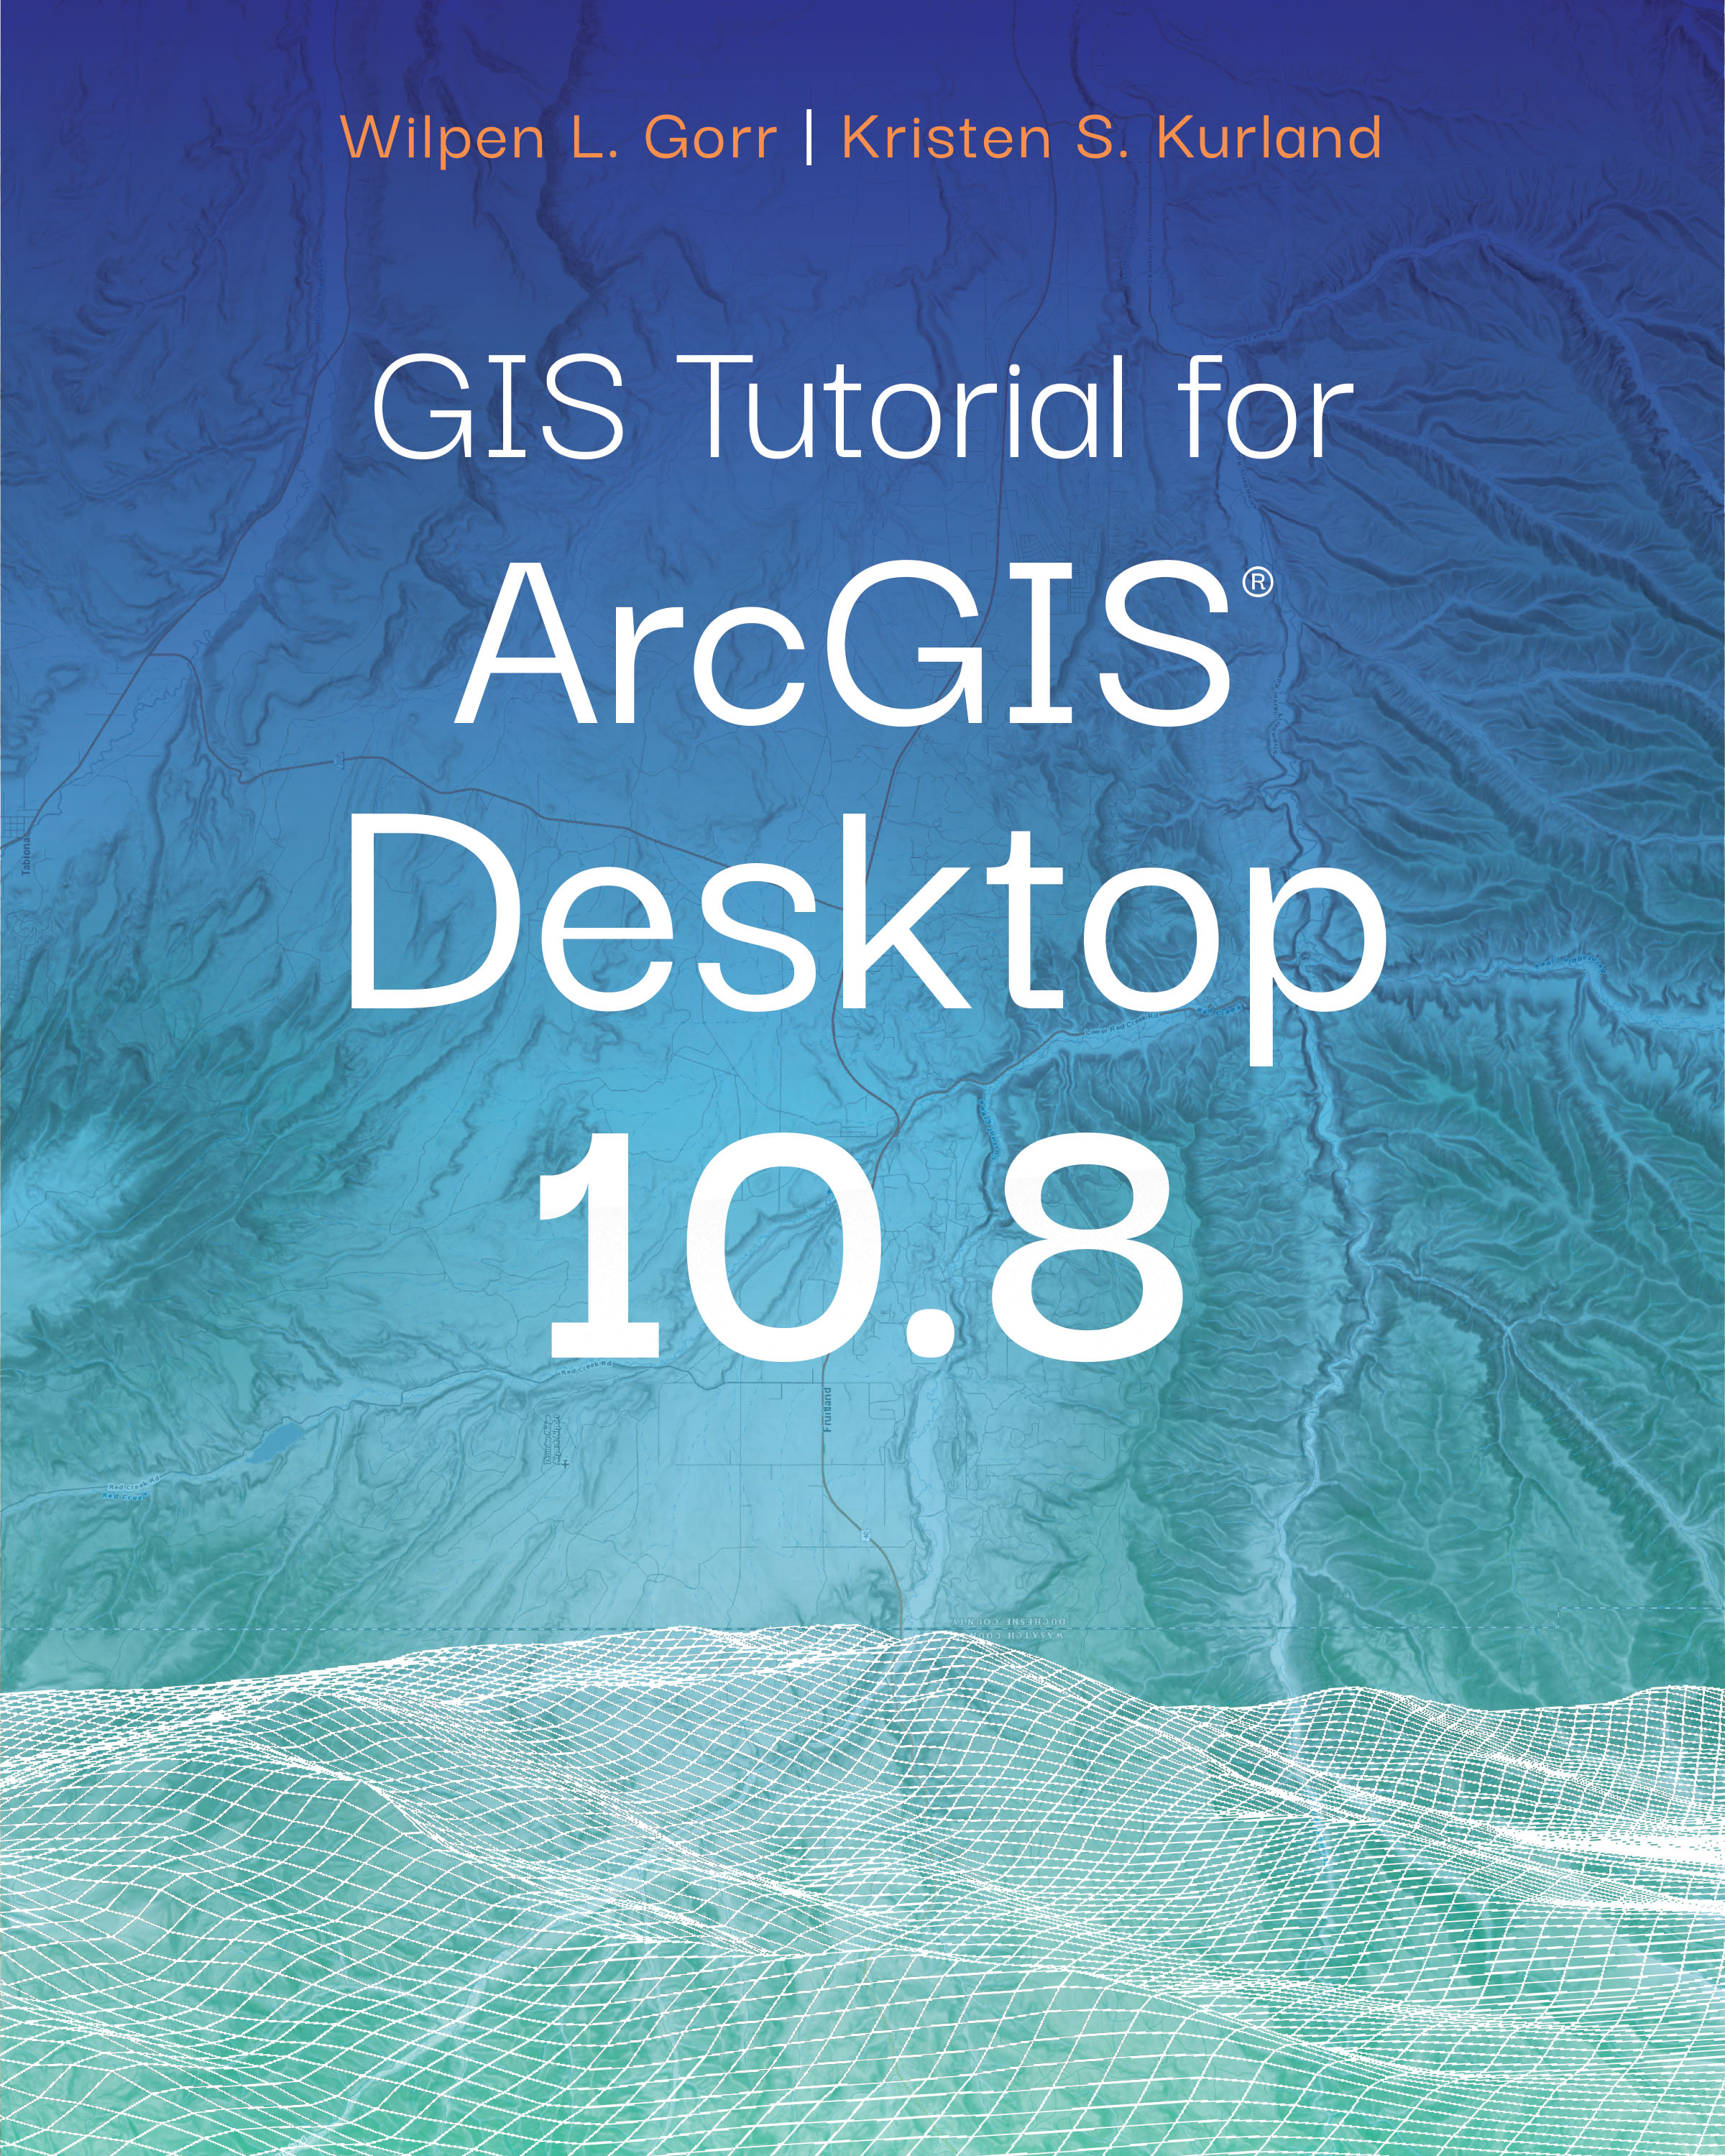 GIS Tutorial for ArcGIS Desktop 10.8